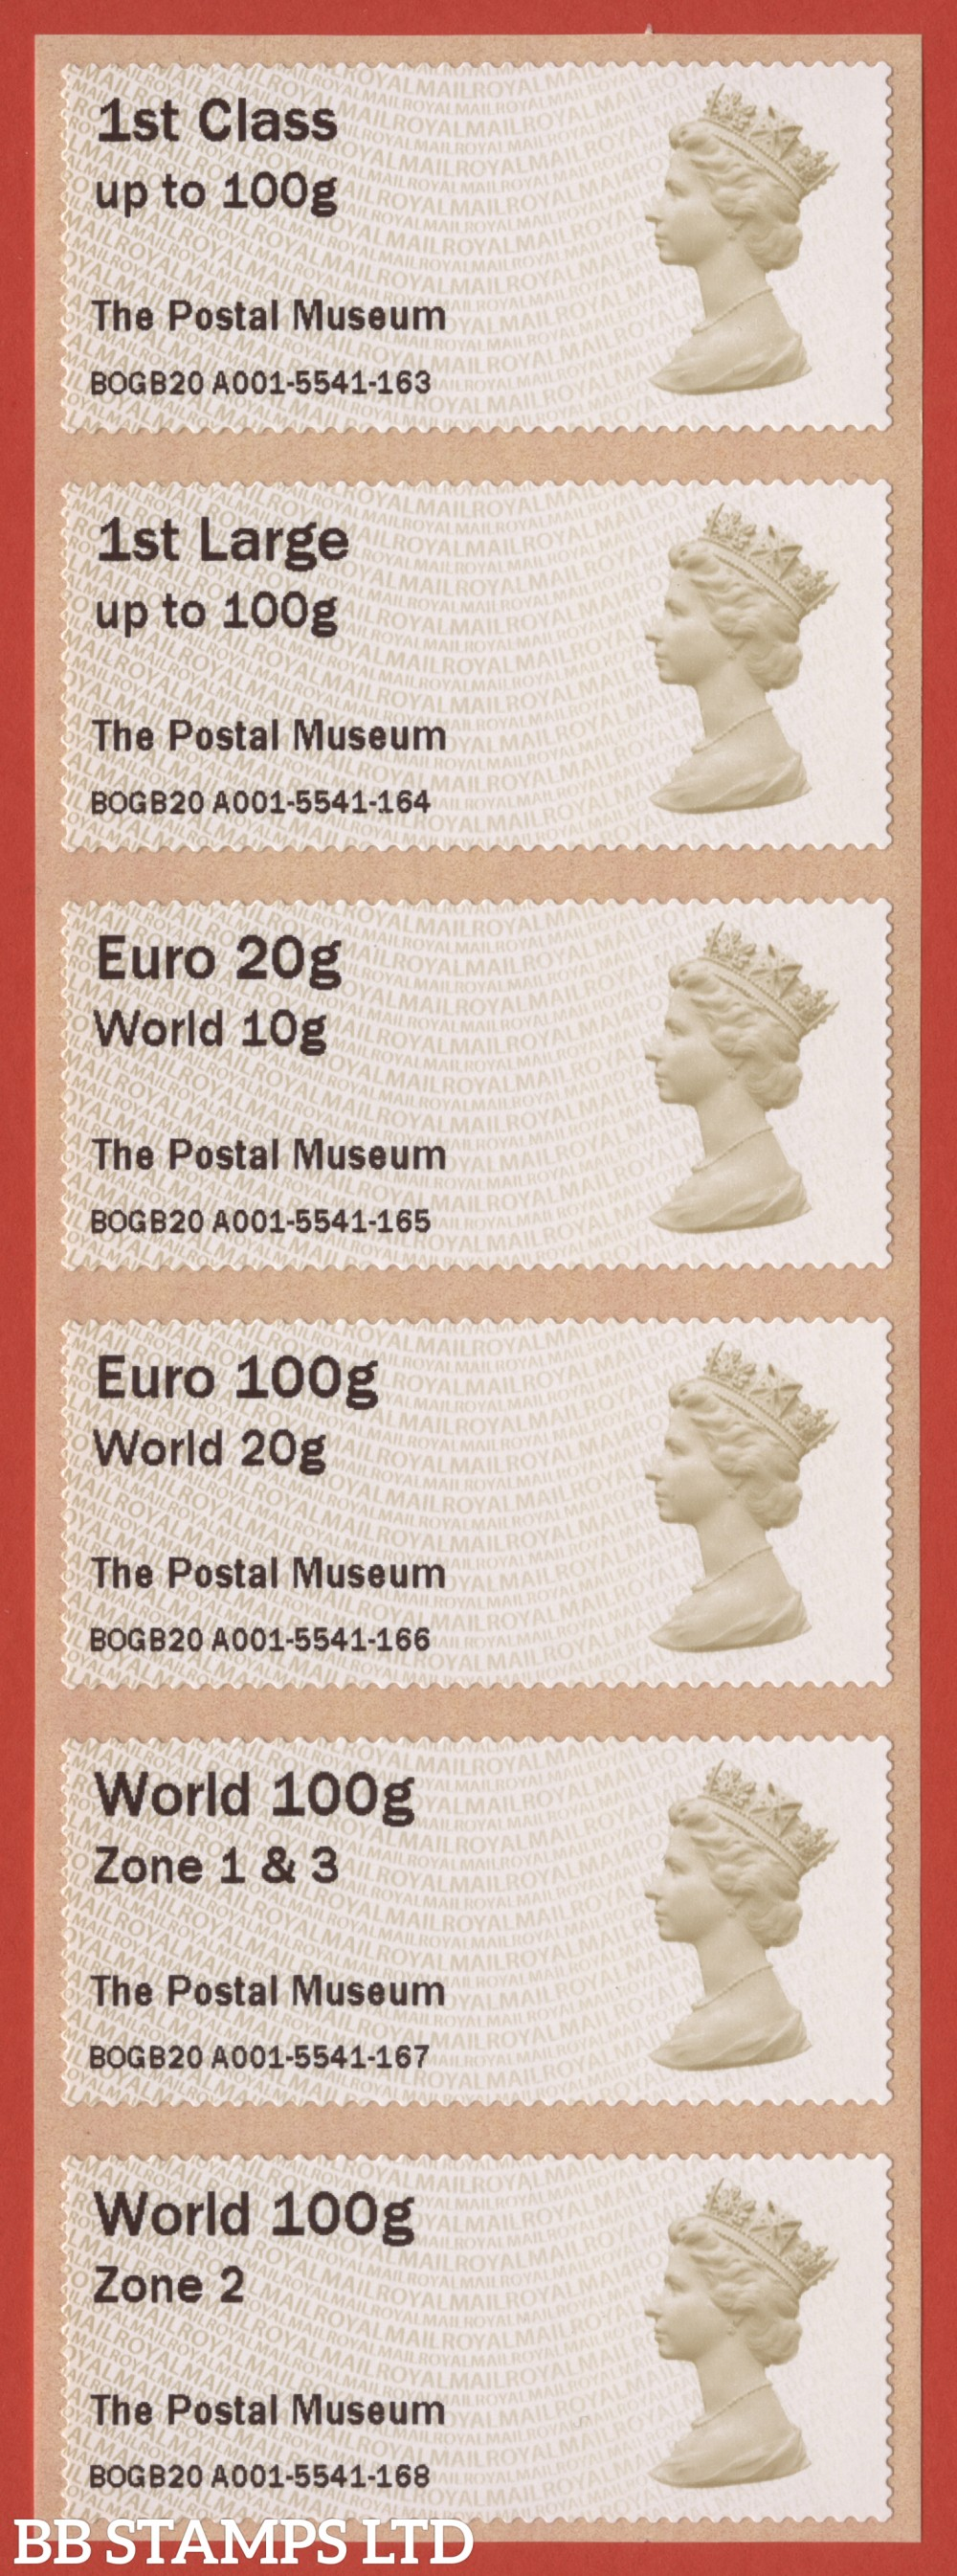 Machin: The Postal Museum, set of 6 (TIIIA) with new overseas stamps: 1st/1stL/Euro 20g World 10g, and 3 new values: Euro 100g World 20g, World 100g Zone 1 & 3 [with &; doesn't exist with hyphen] and World Zone 2: with MA14 year code (BK30, P4)